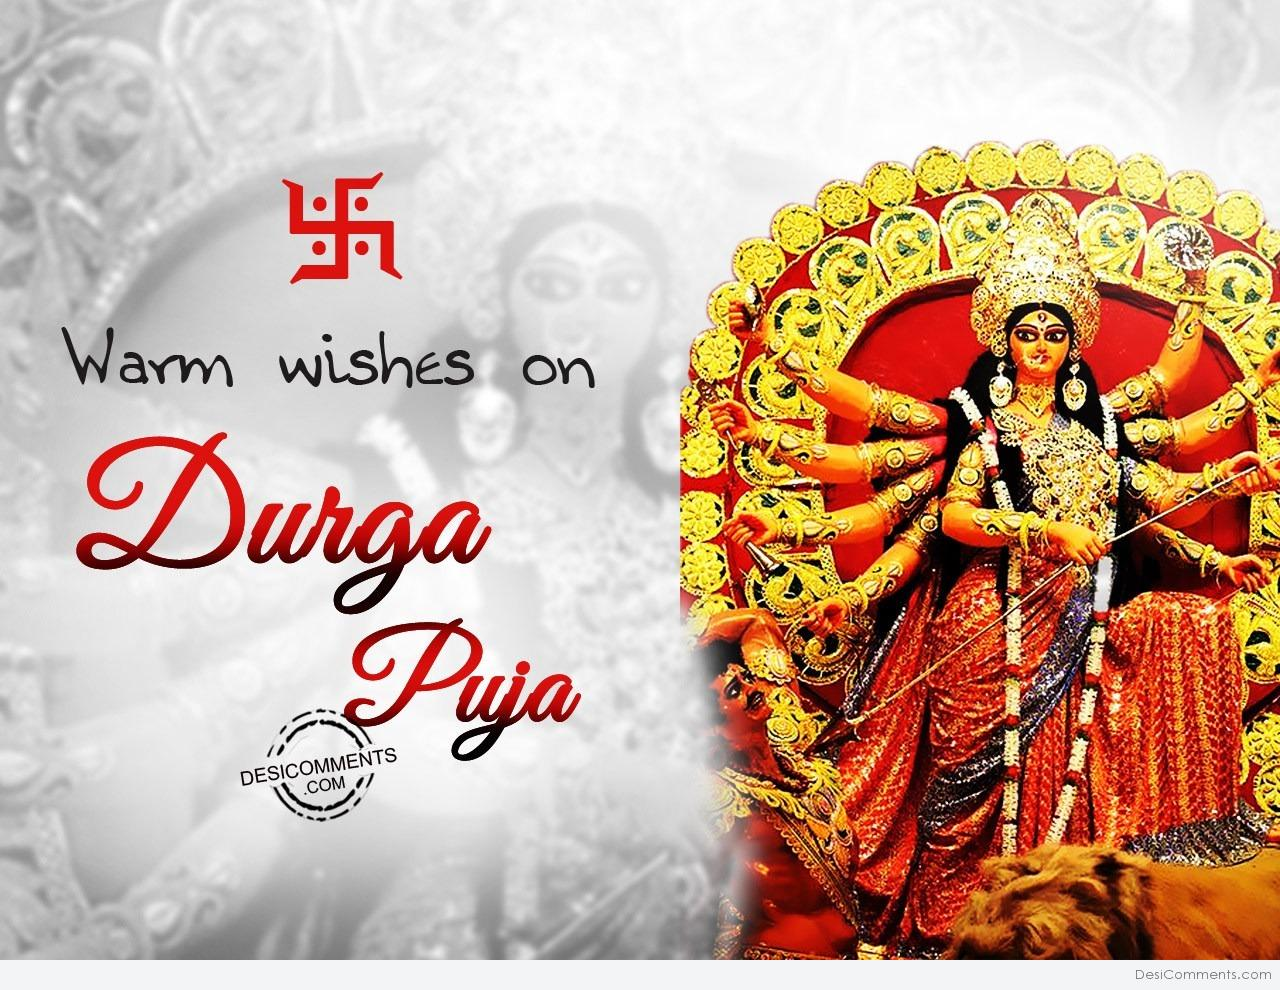 Durga puja pictures images graphics picture warm wishes on durga pooja kristyandbryce Images